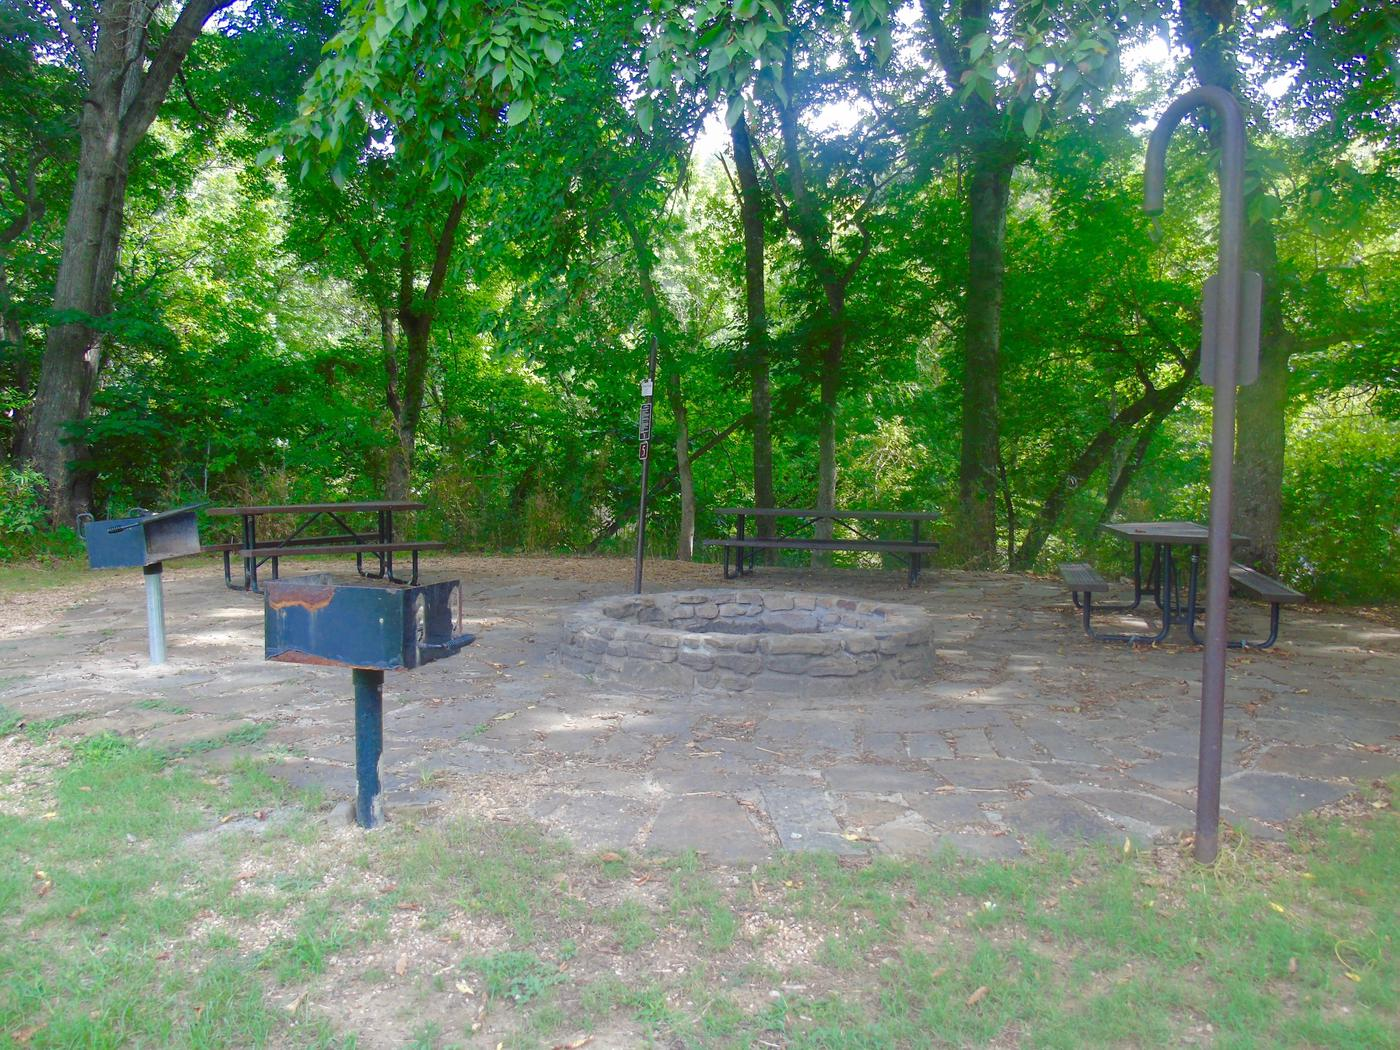 Tyler Bend Group Site 5-1Group Site #5, Three picnic tables; two lantern holders; two charcoal cooking stands; one large fire pit.